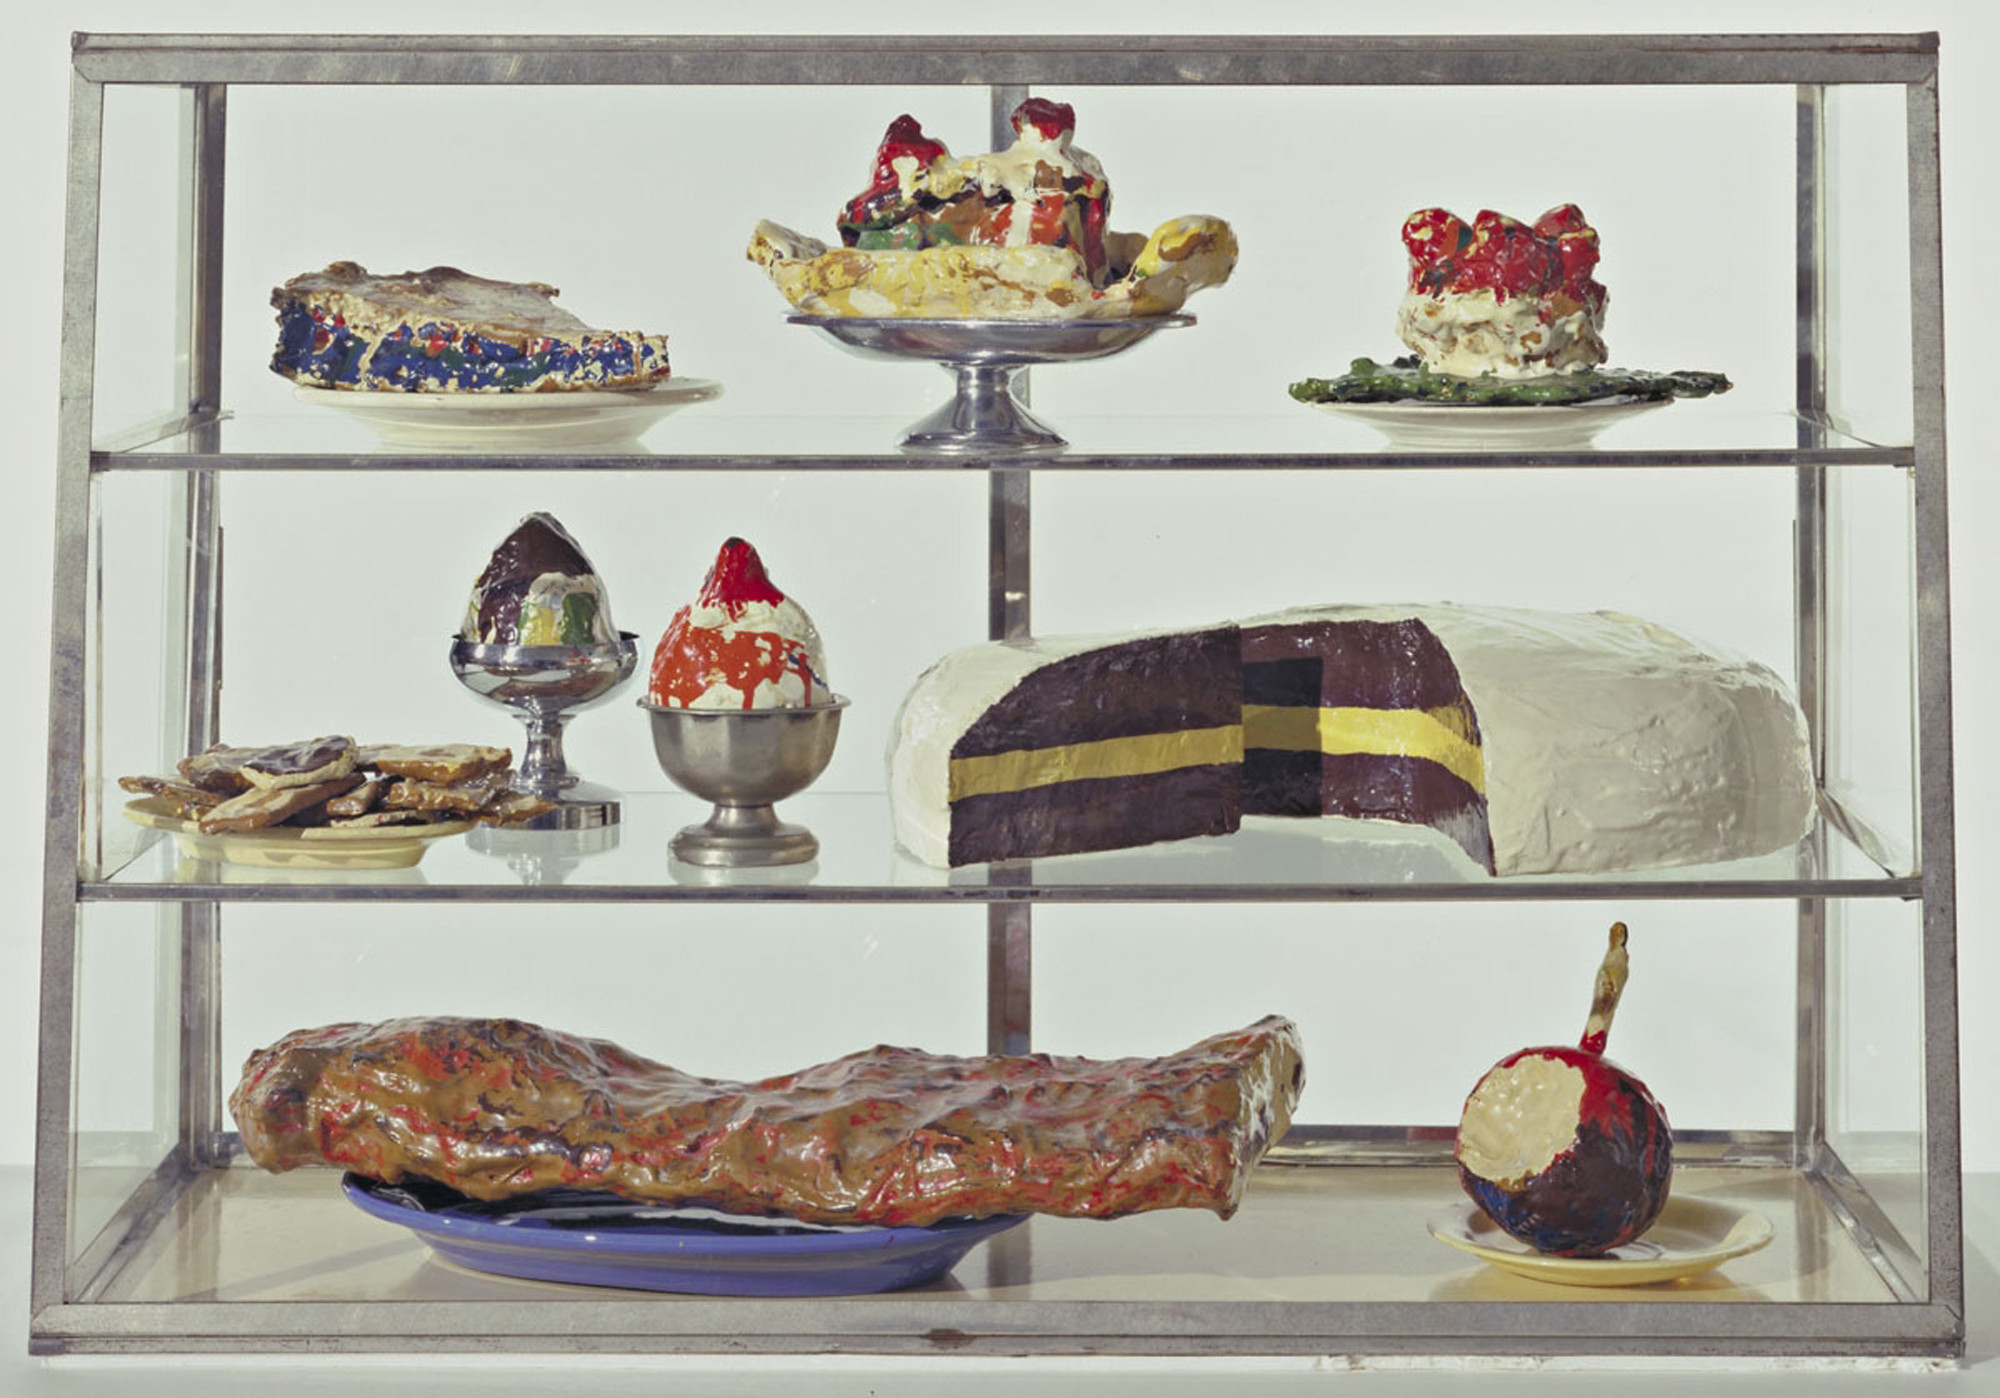 "Painted plaster sculptures on ceramic plates, metal platter and cubs in glass-and-metal case. 20 3/4 x 30 1/8 x 14 3/4"" (52.7 x 76.5 x 37.3 cm). The Museum of Modern Art, New York. The Sidney and Harriet Janis Collection. © 1961–62 Claes Oldenburg. Photo: MoMA Imaging Services"